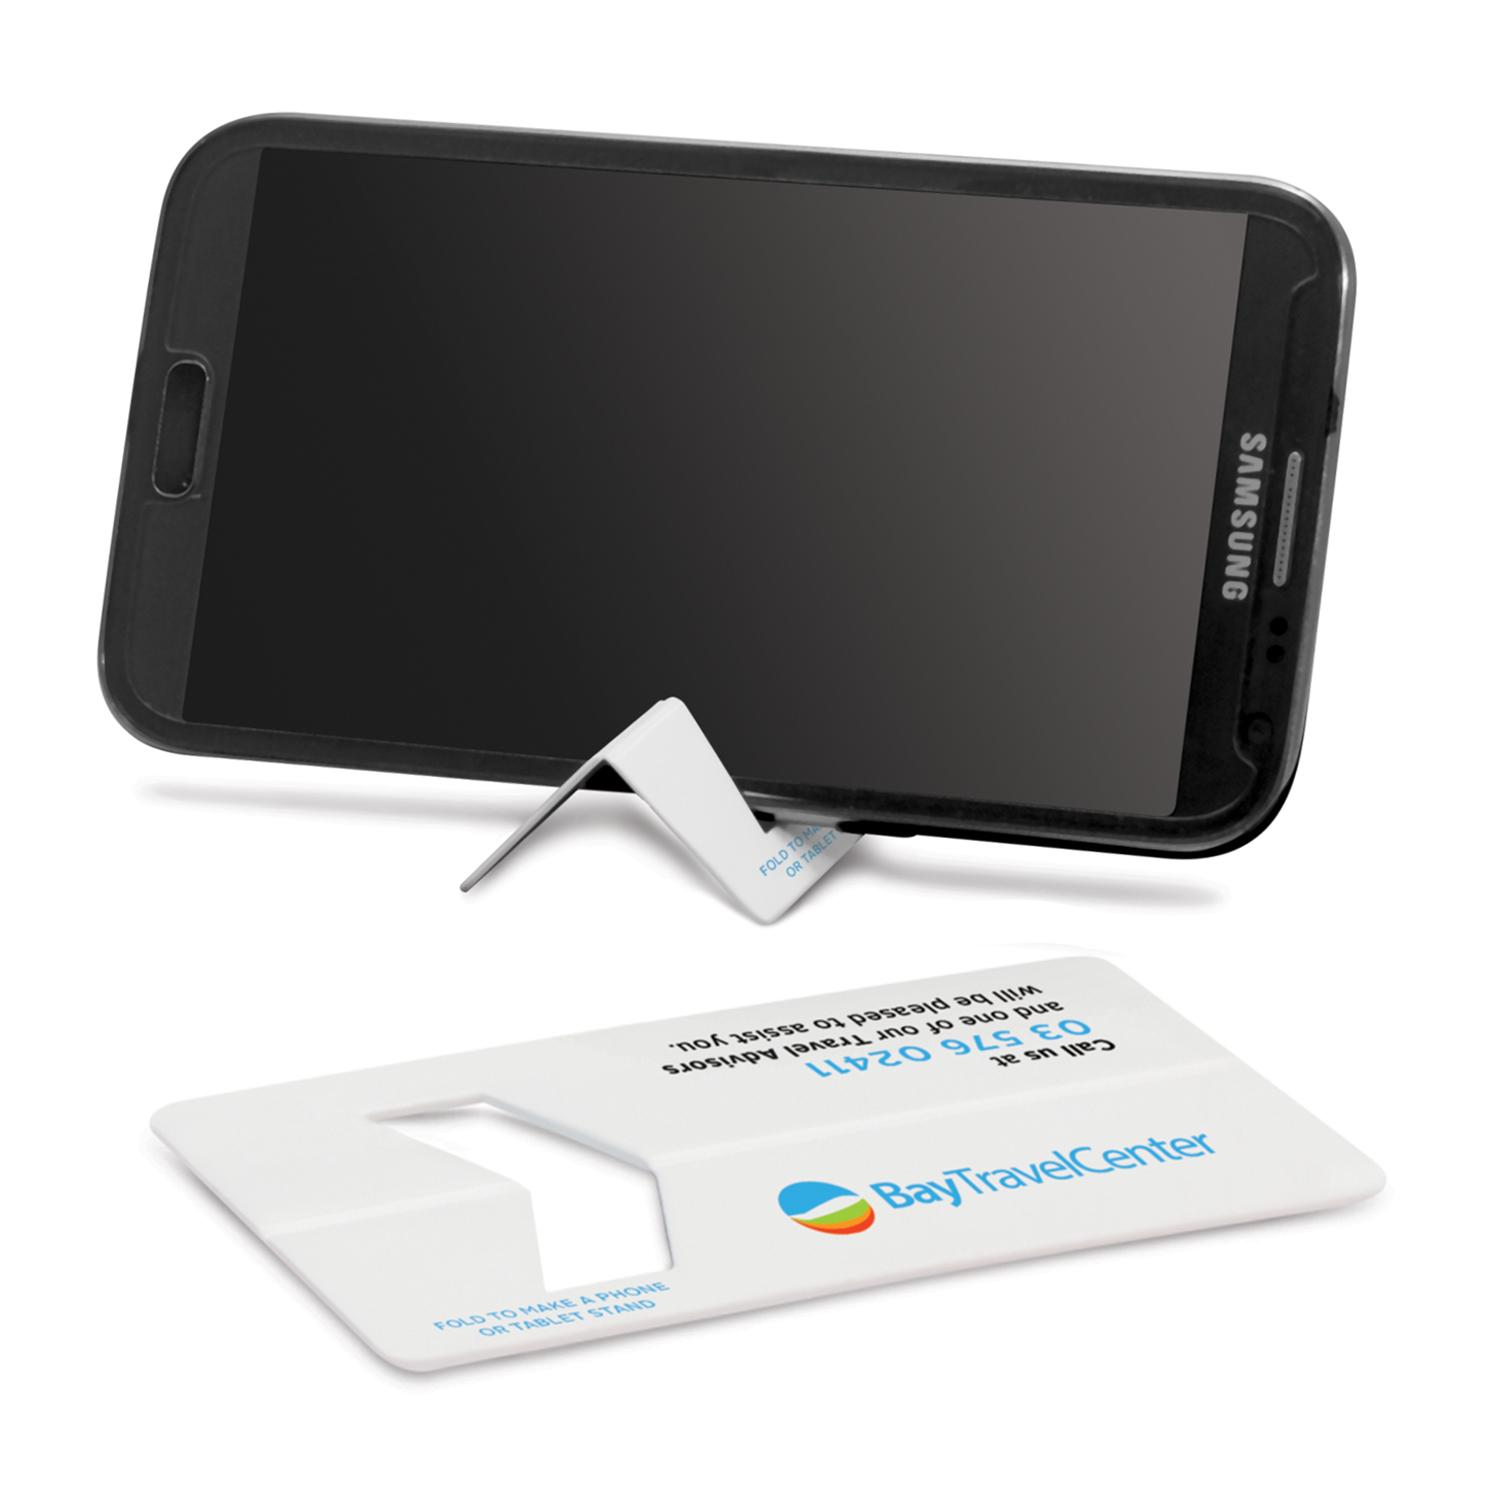 Business Card Phone Stand - Direct Digital Per Position